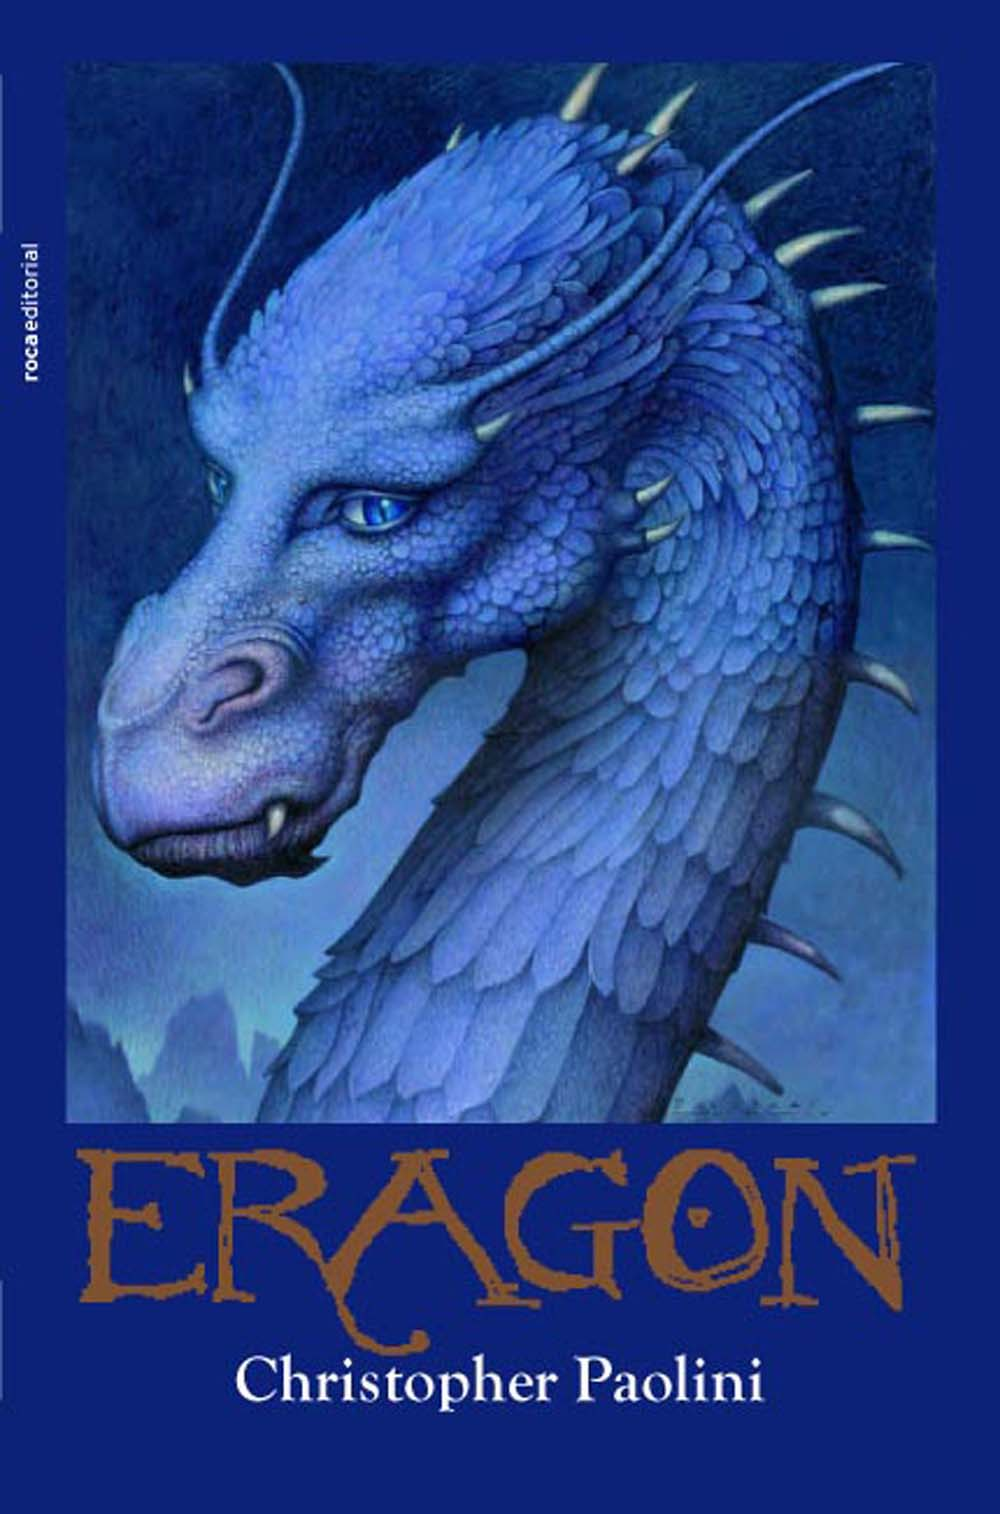 Christopher Paolini Facts